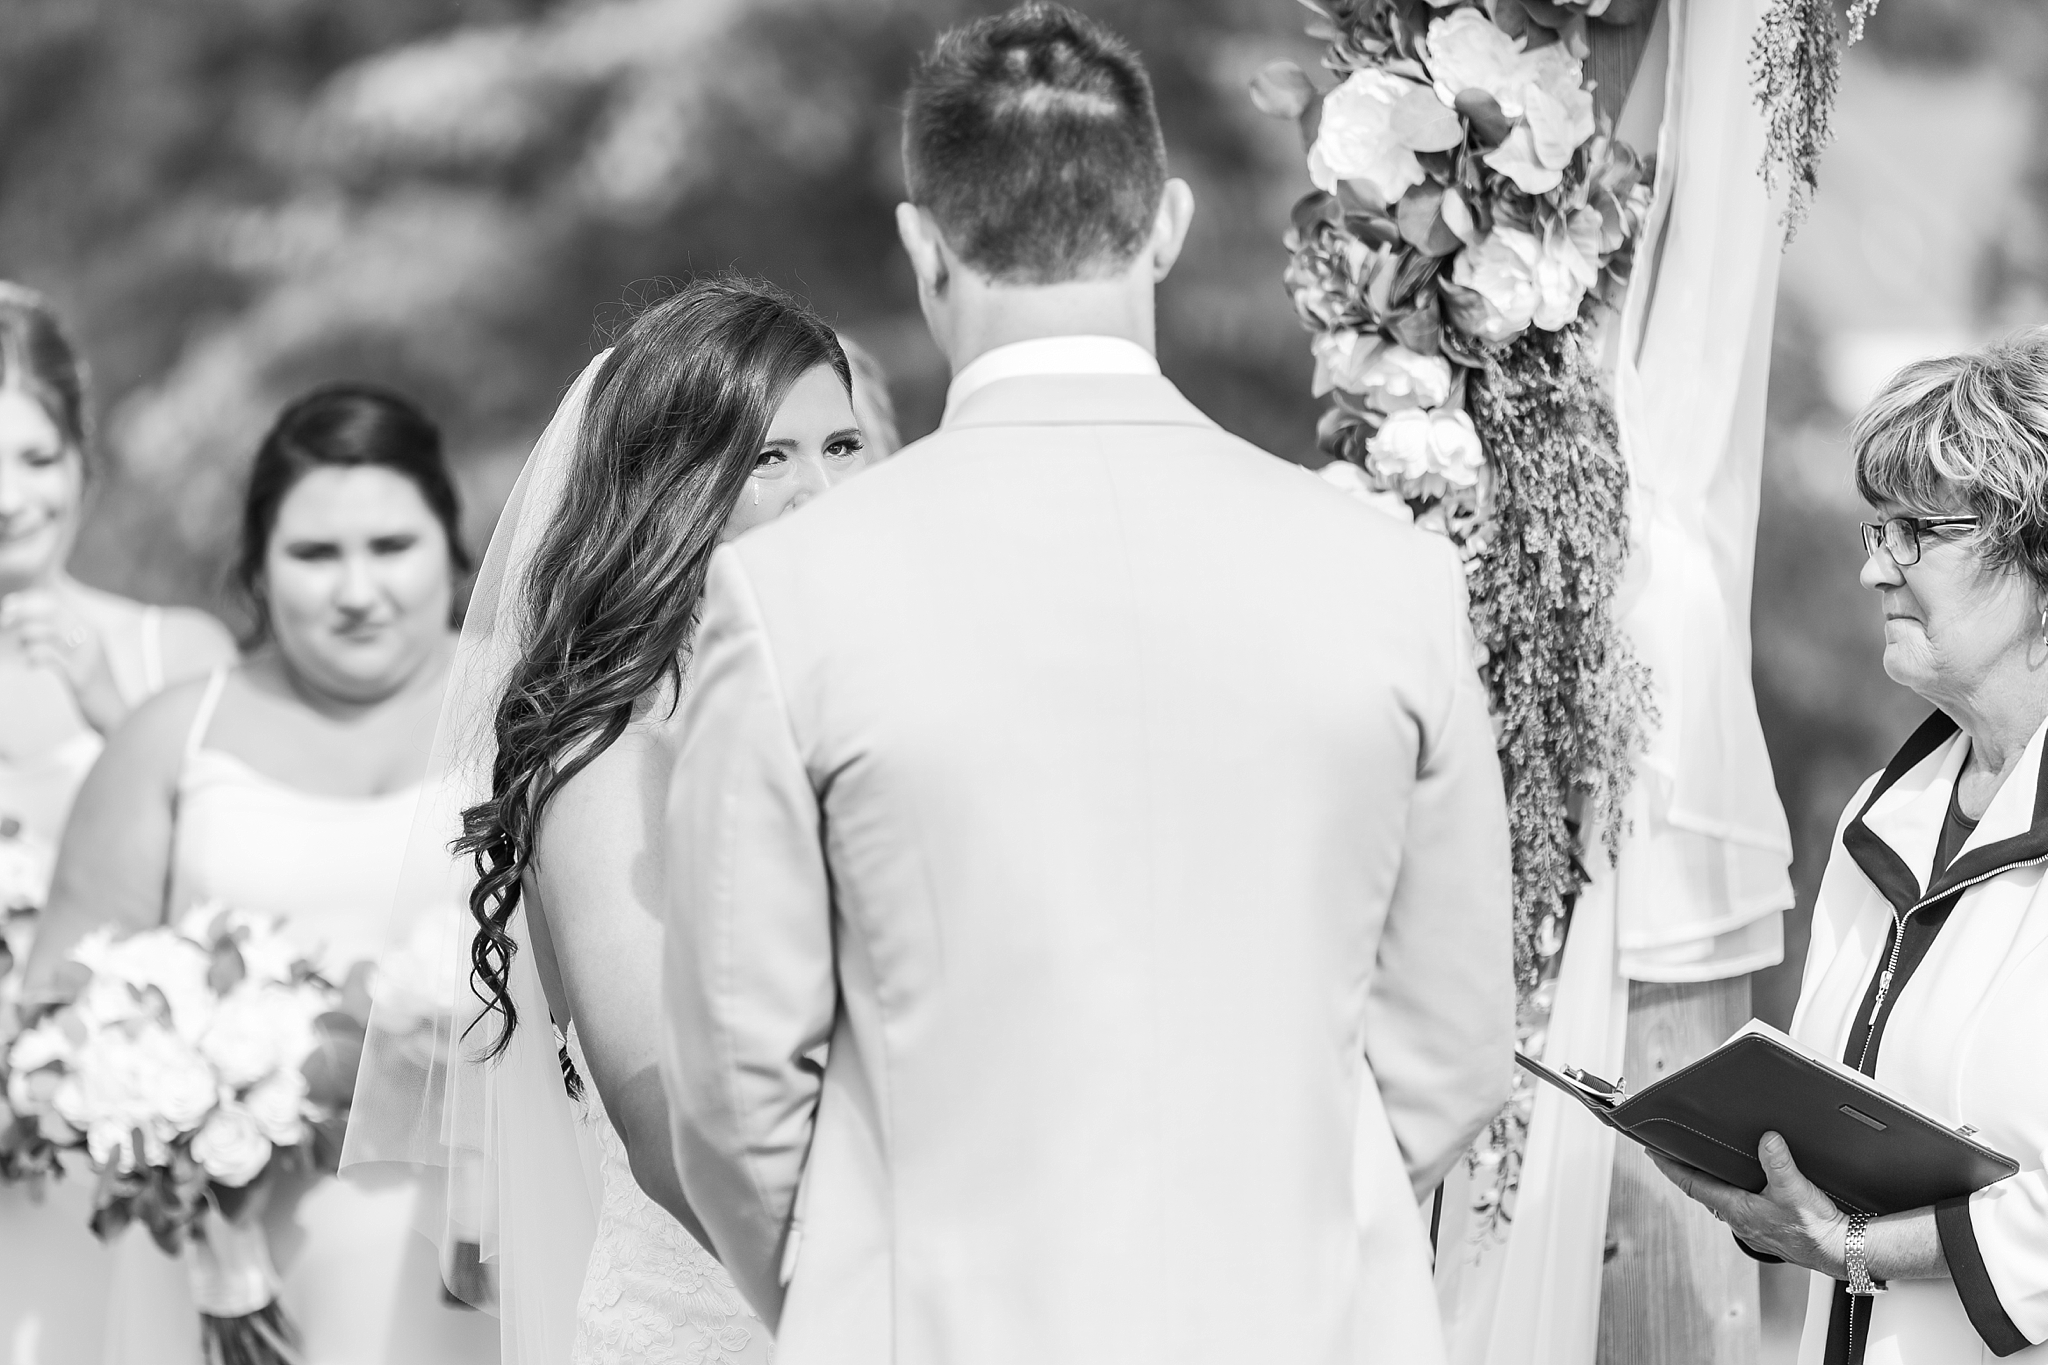 candid-timeless-wedding-photos-at-the-captains-club-in-grand-blanc-michigan-by-courtney-carolyn-photography_0048.jpg